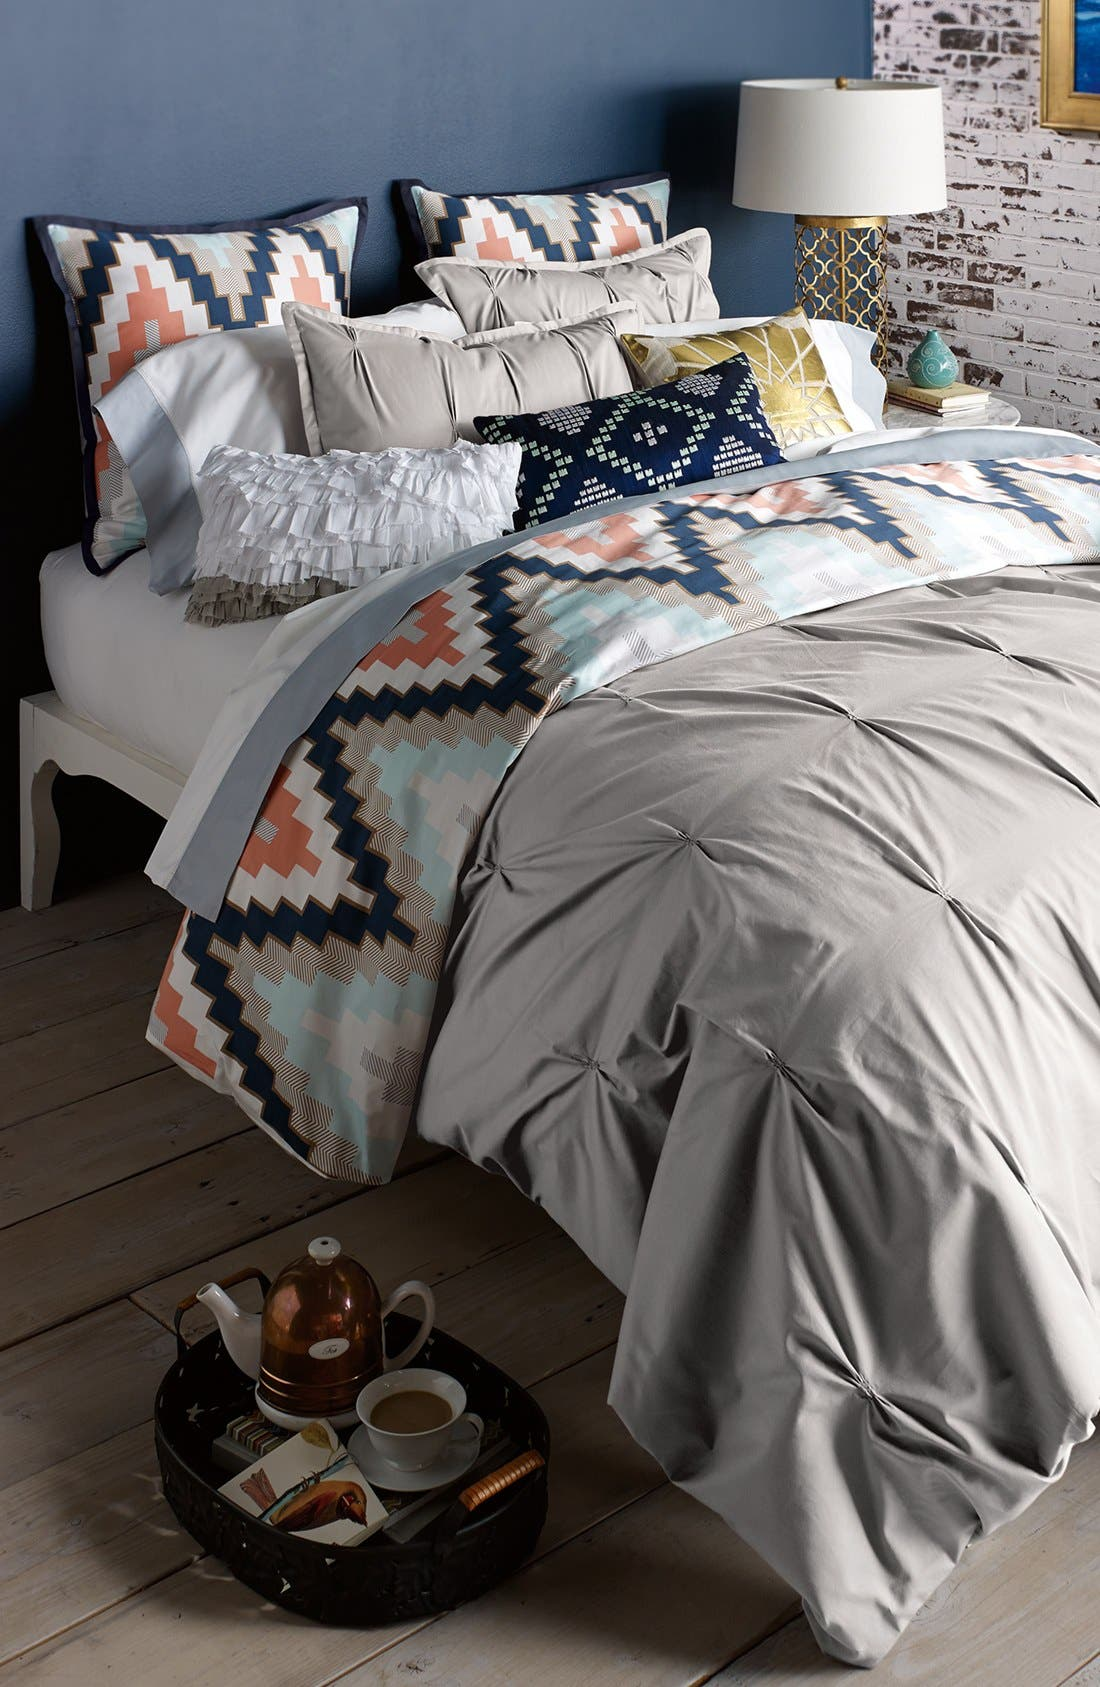 Alternate Image 1 Selected - Blissliving Home 'Harper - Grey' Cotton Sateen Duvet Cover & Shams (Online Only)